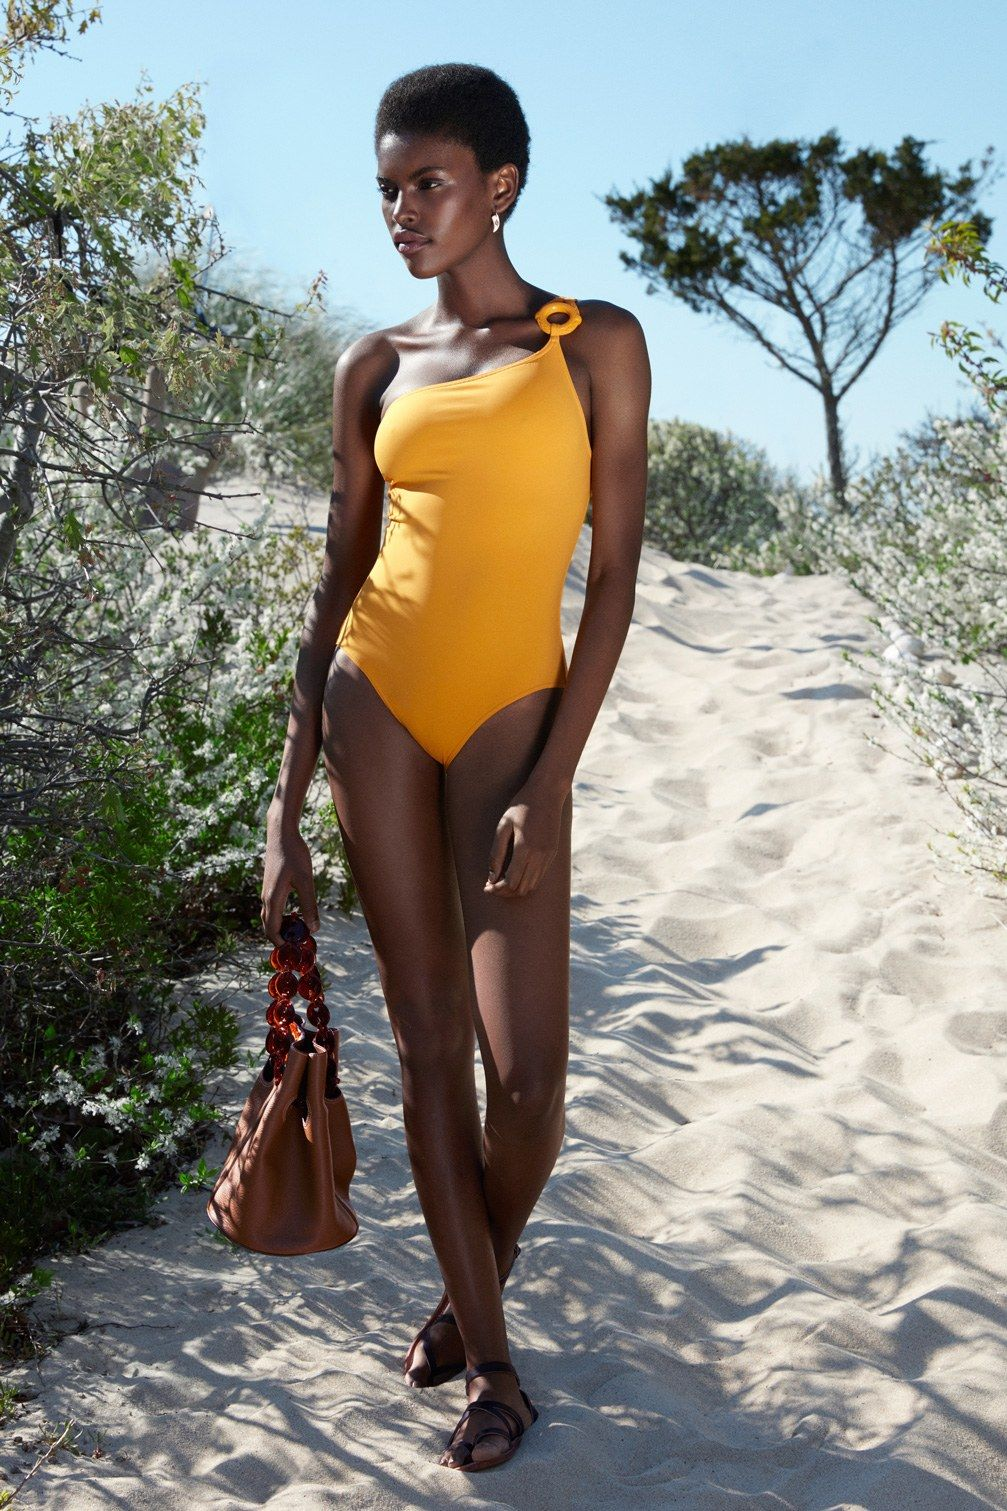 Amilna Estevao in her Swimsuit, Blessing the Beaches of Angola